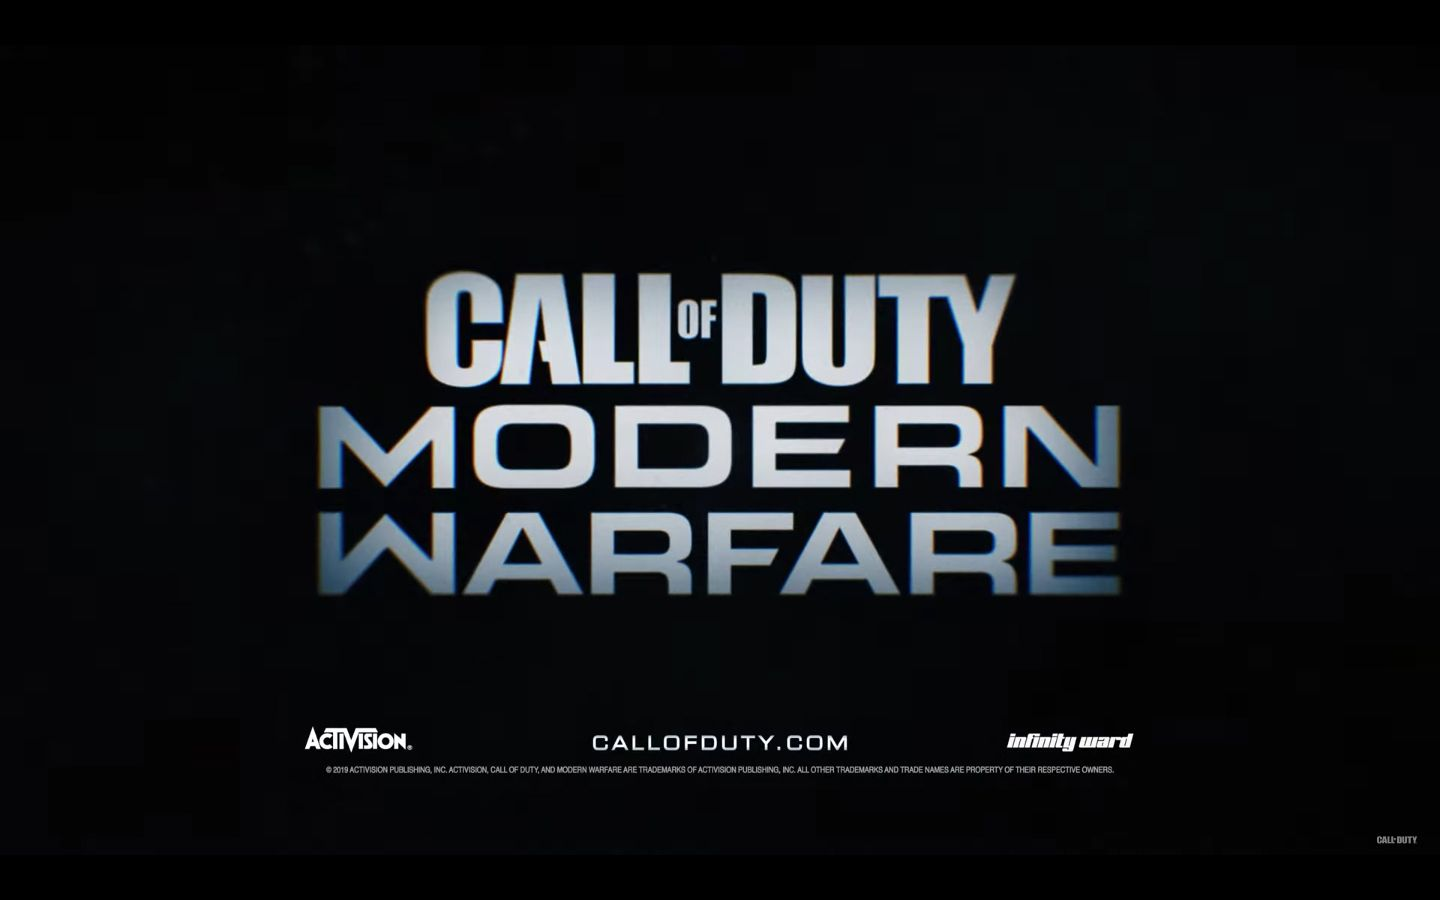 New Call Of Duty Modern Warfare Trailer And Details Revealed